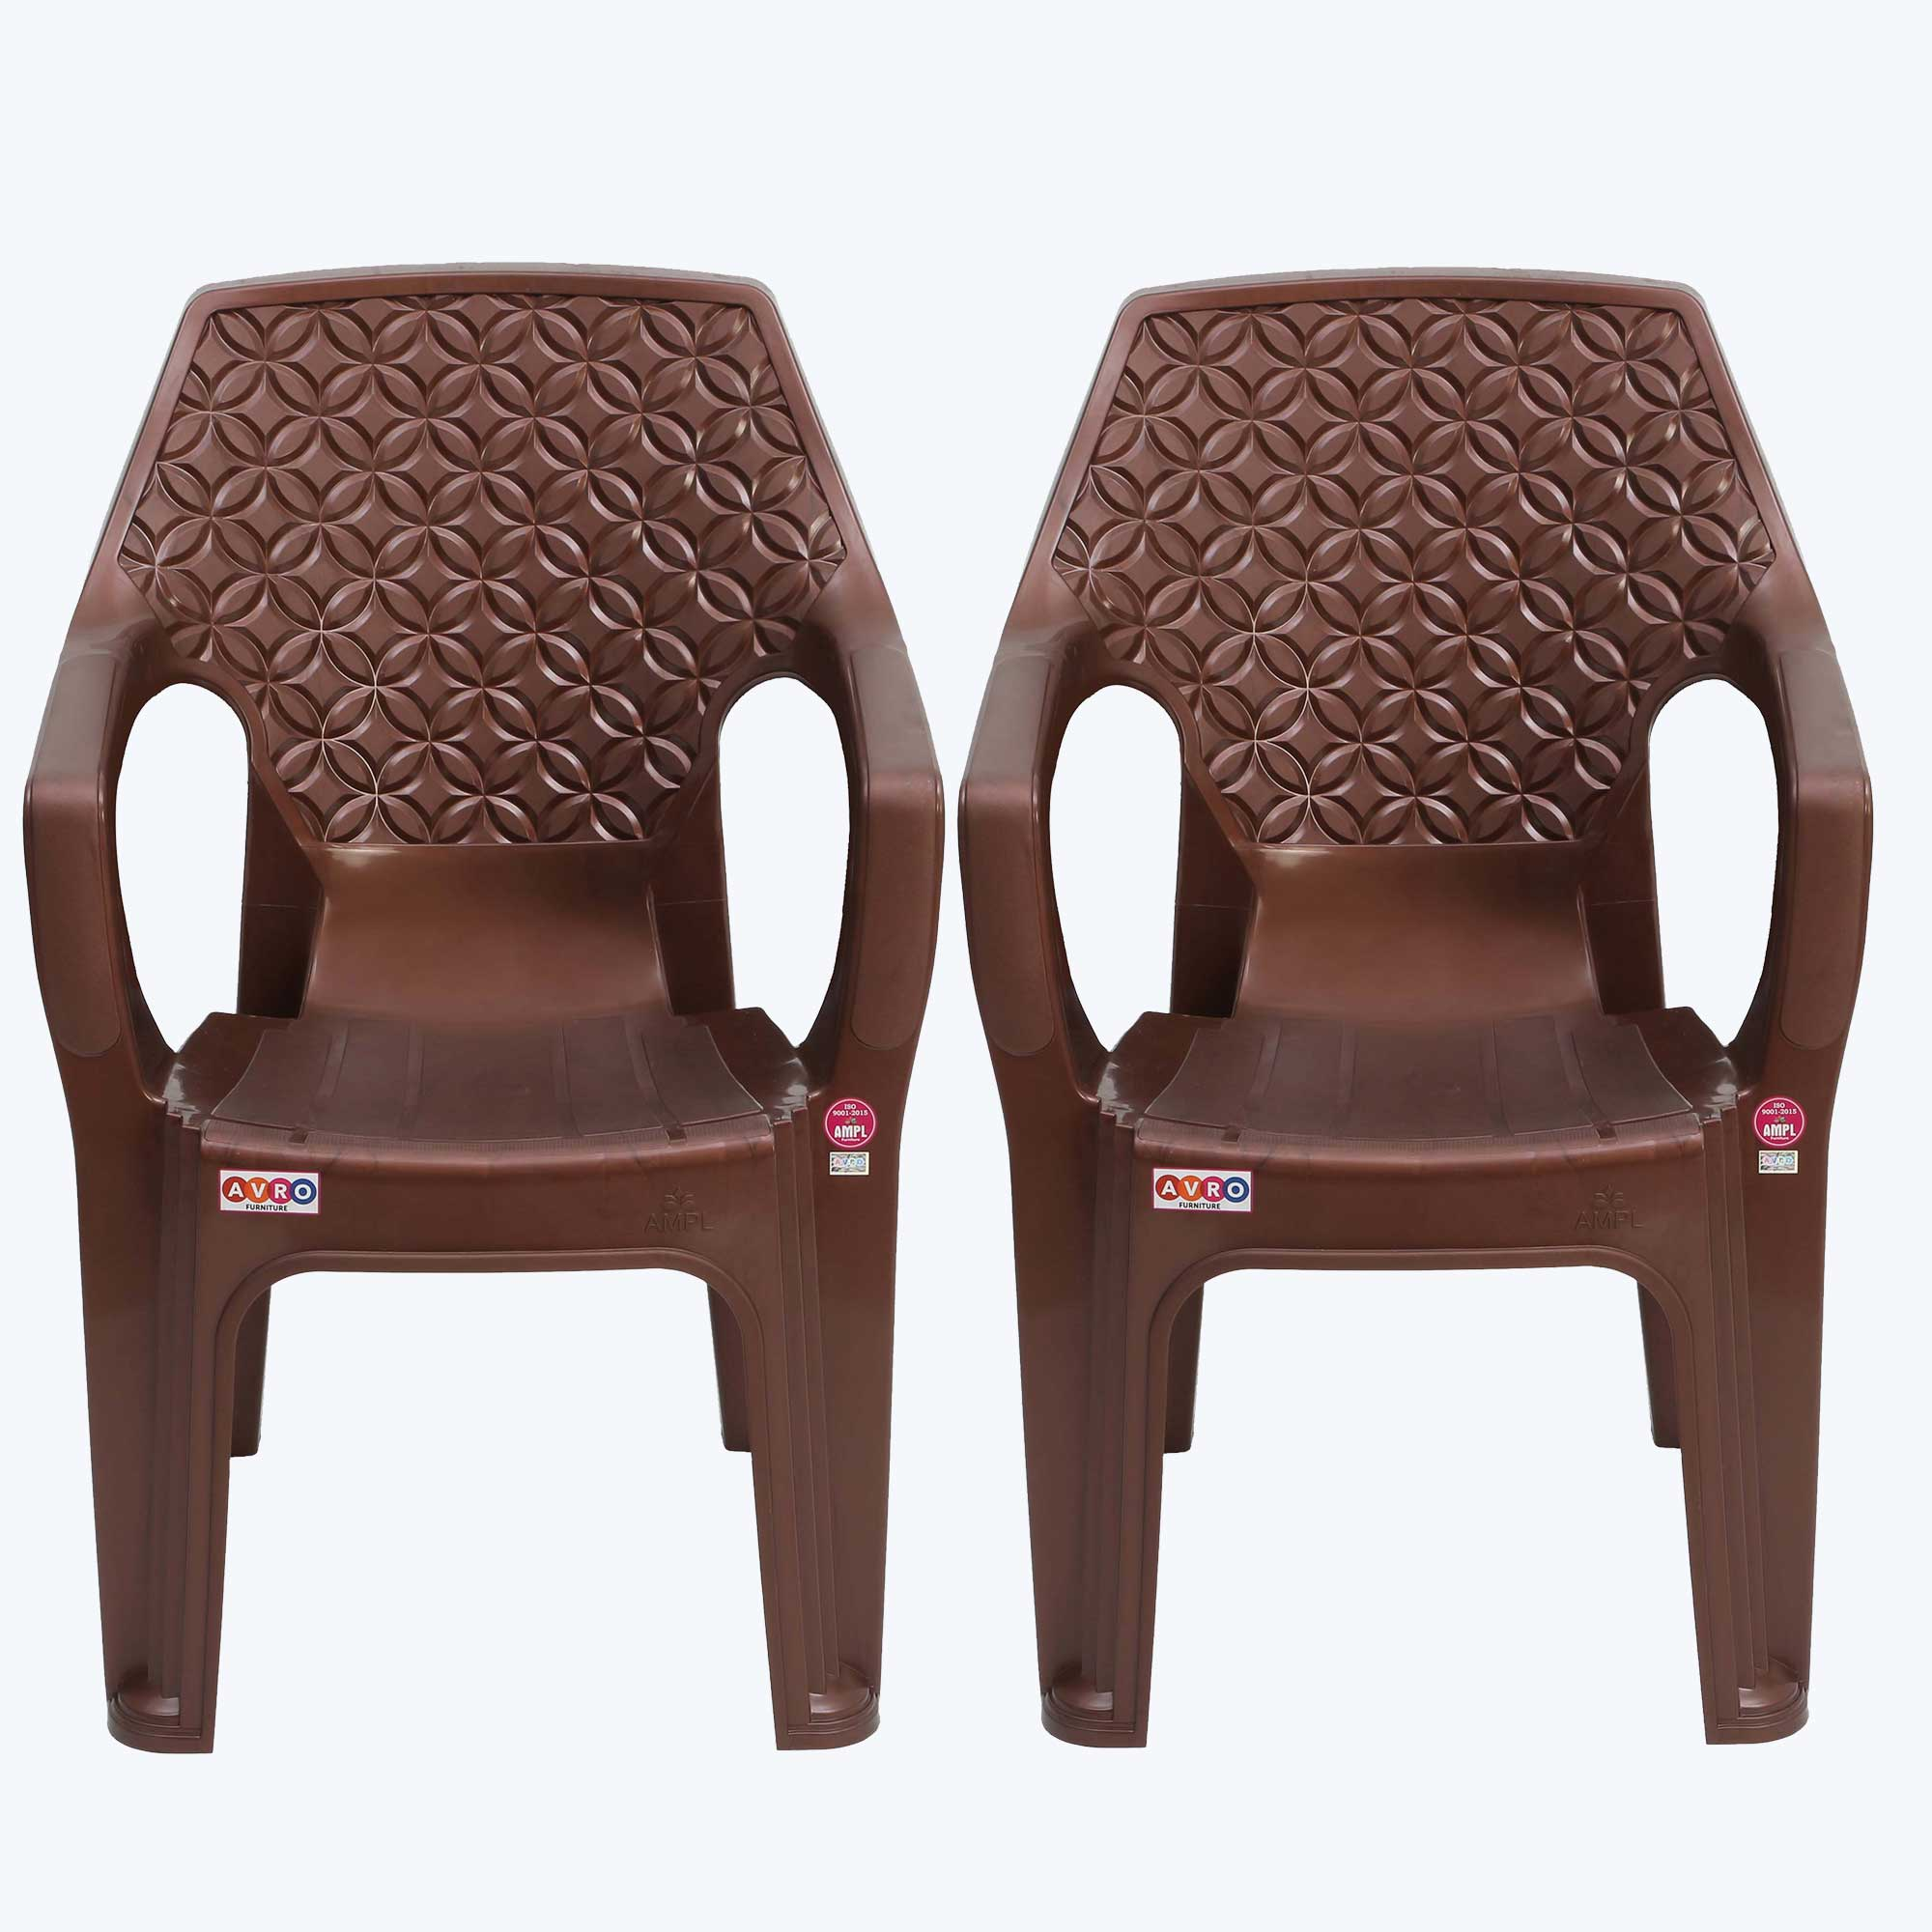 Comfortable Plastic Chairs